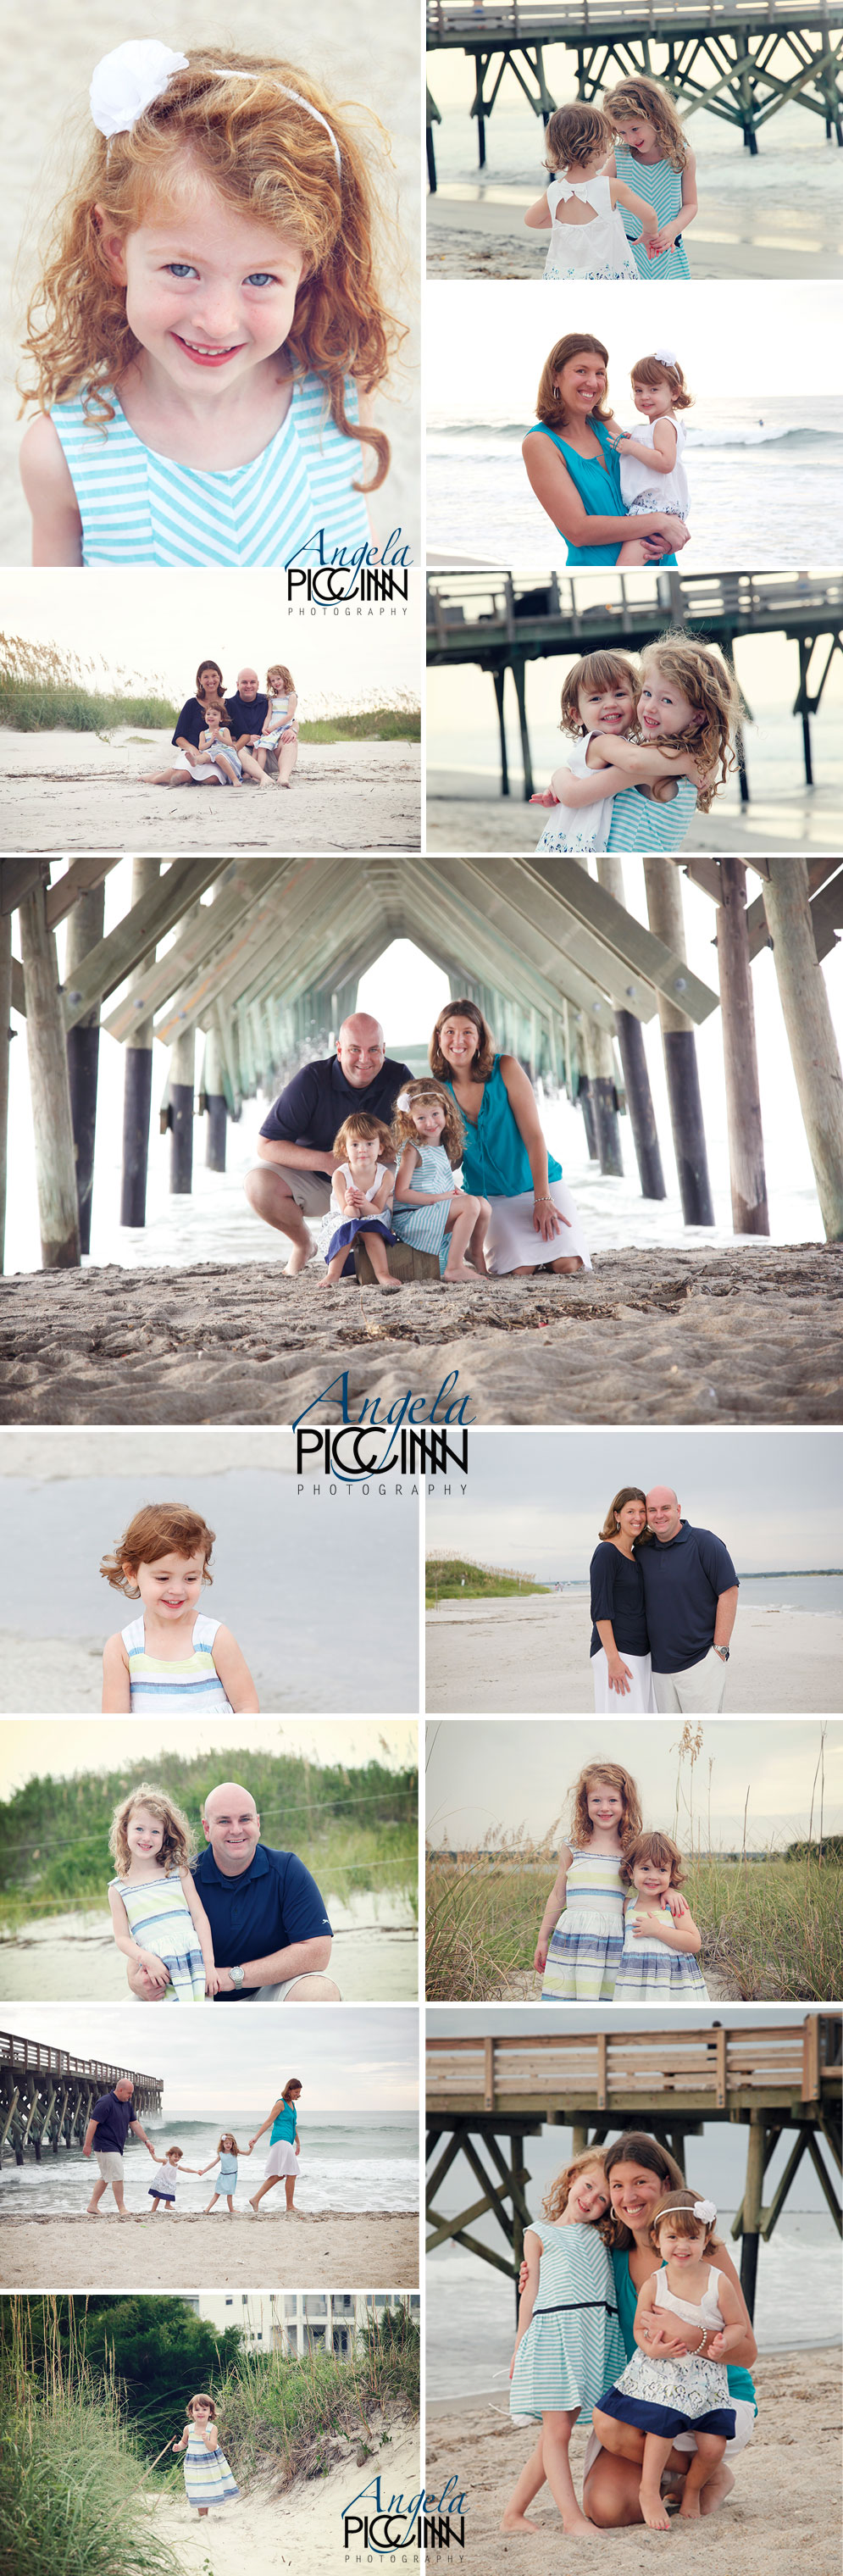 Wrightsville Beach Family Portraits by Angela Piccinin